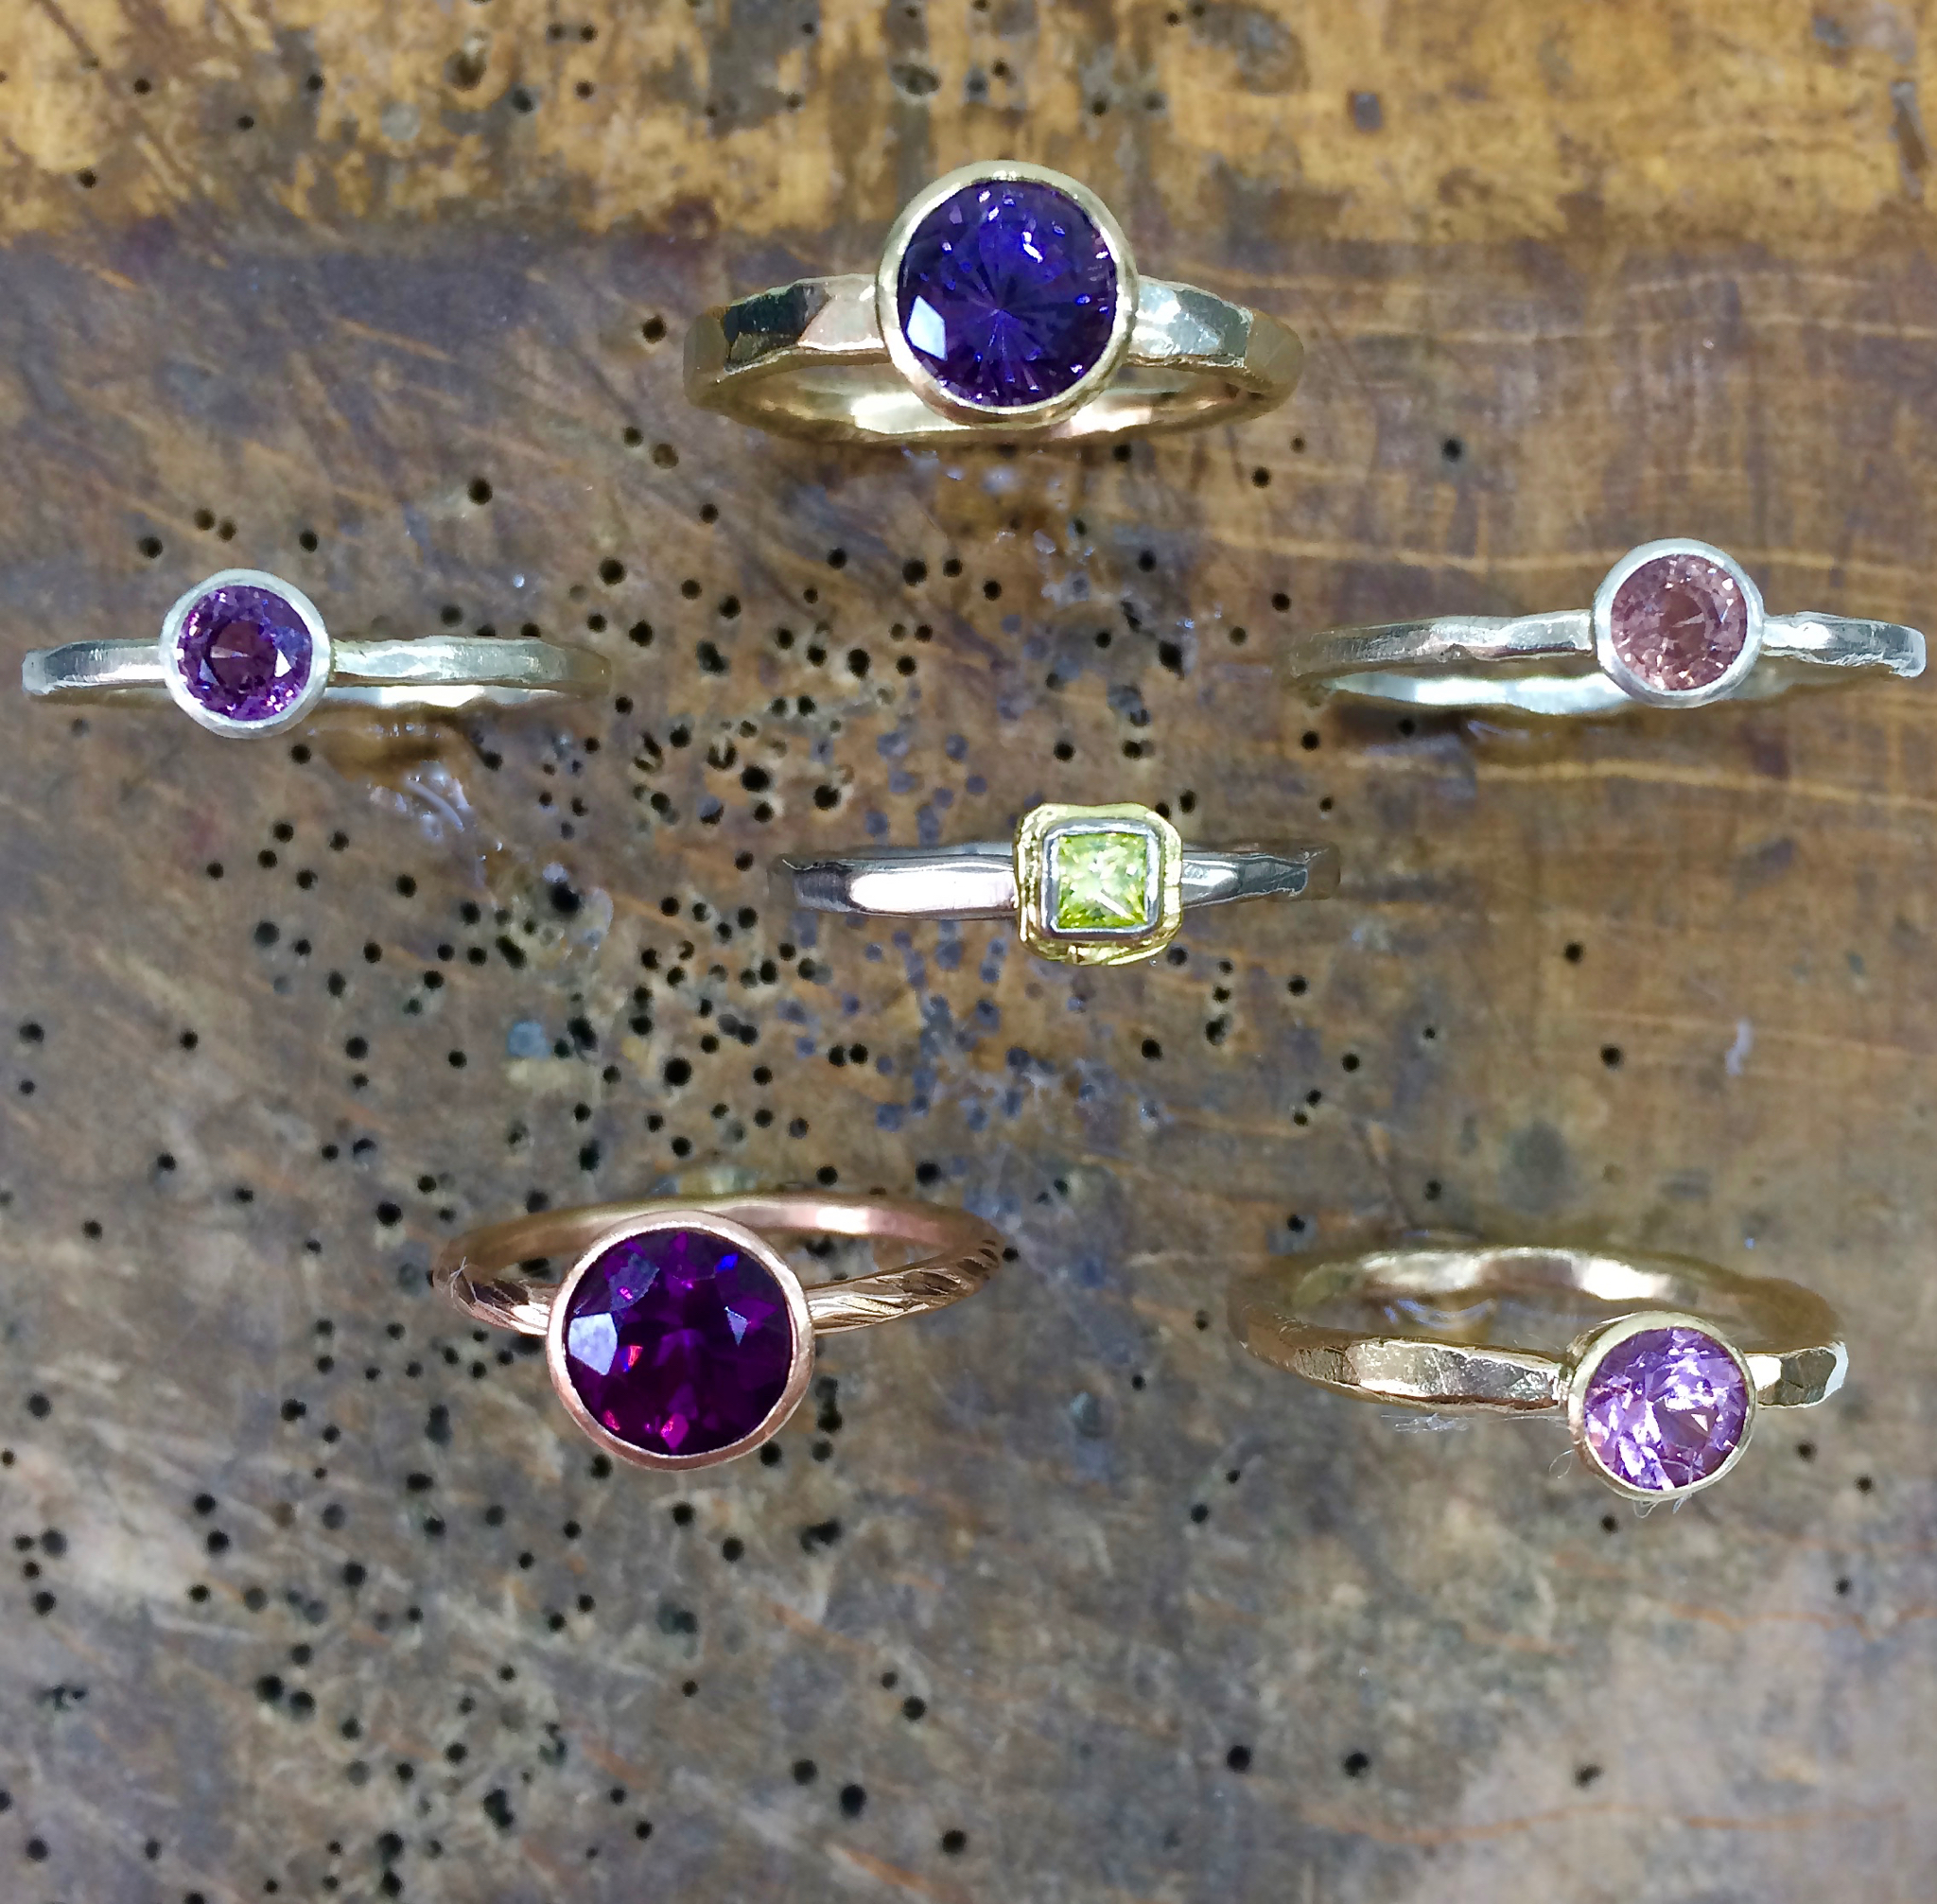 Little Pops of colour - From Spinel to Diamond, and Sapphire and Garnet too. -